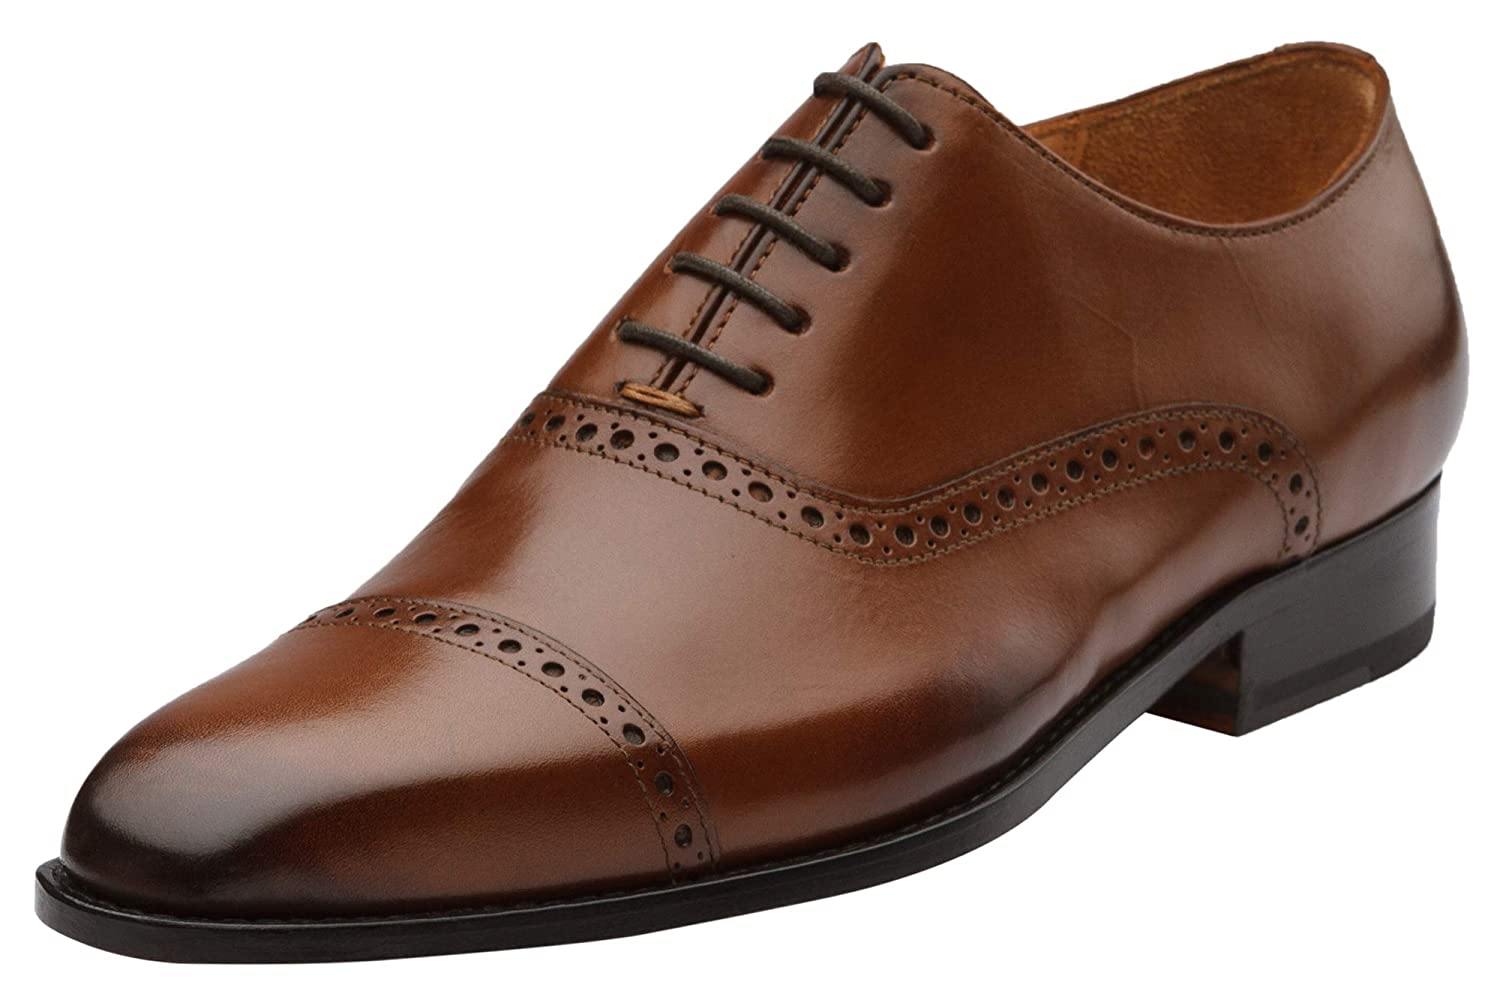 Med-brown 3DM Lifestyle Handcrafted Men's Genuine Leather Semi Brogue Leather Oxfords shoes